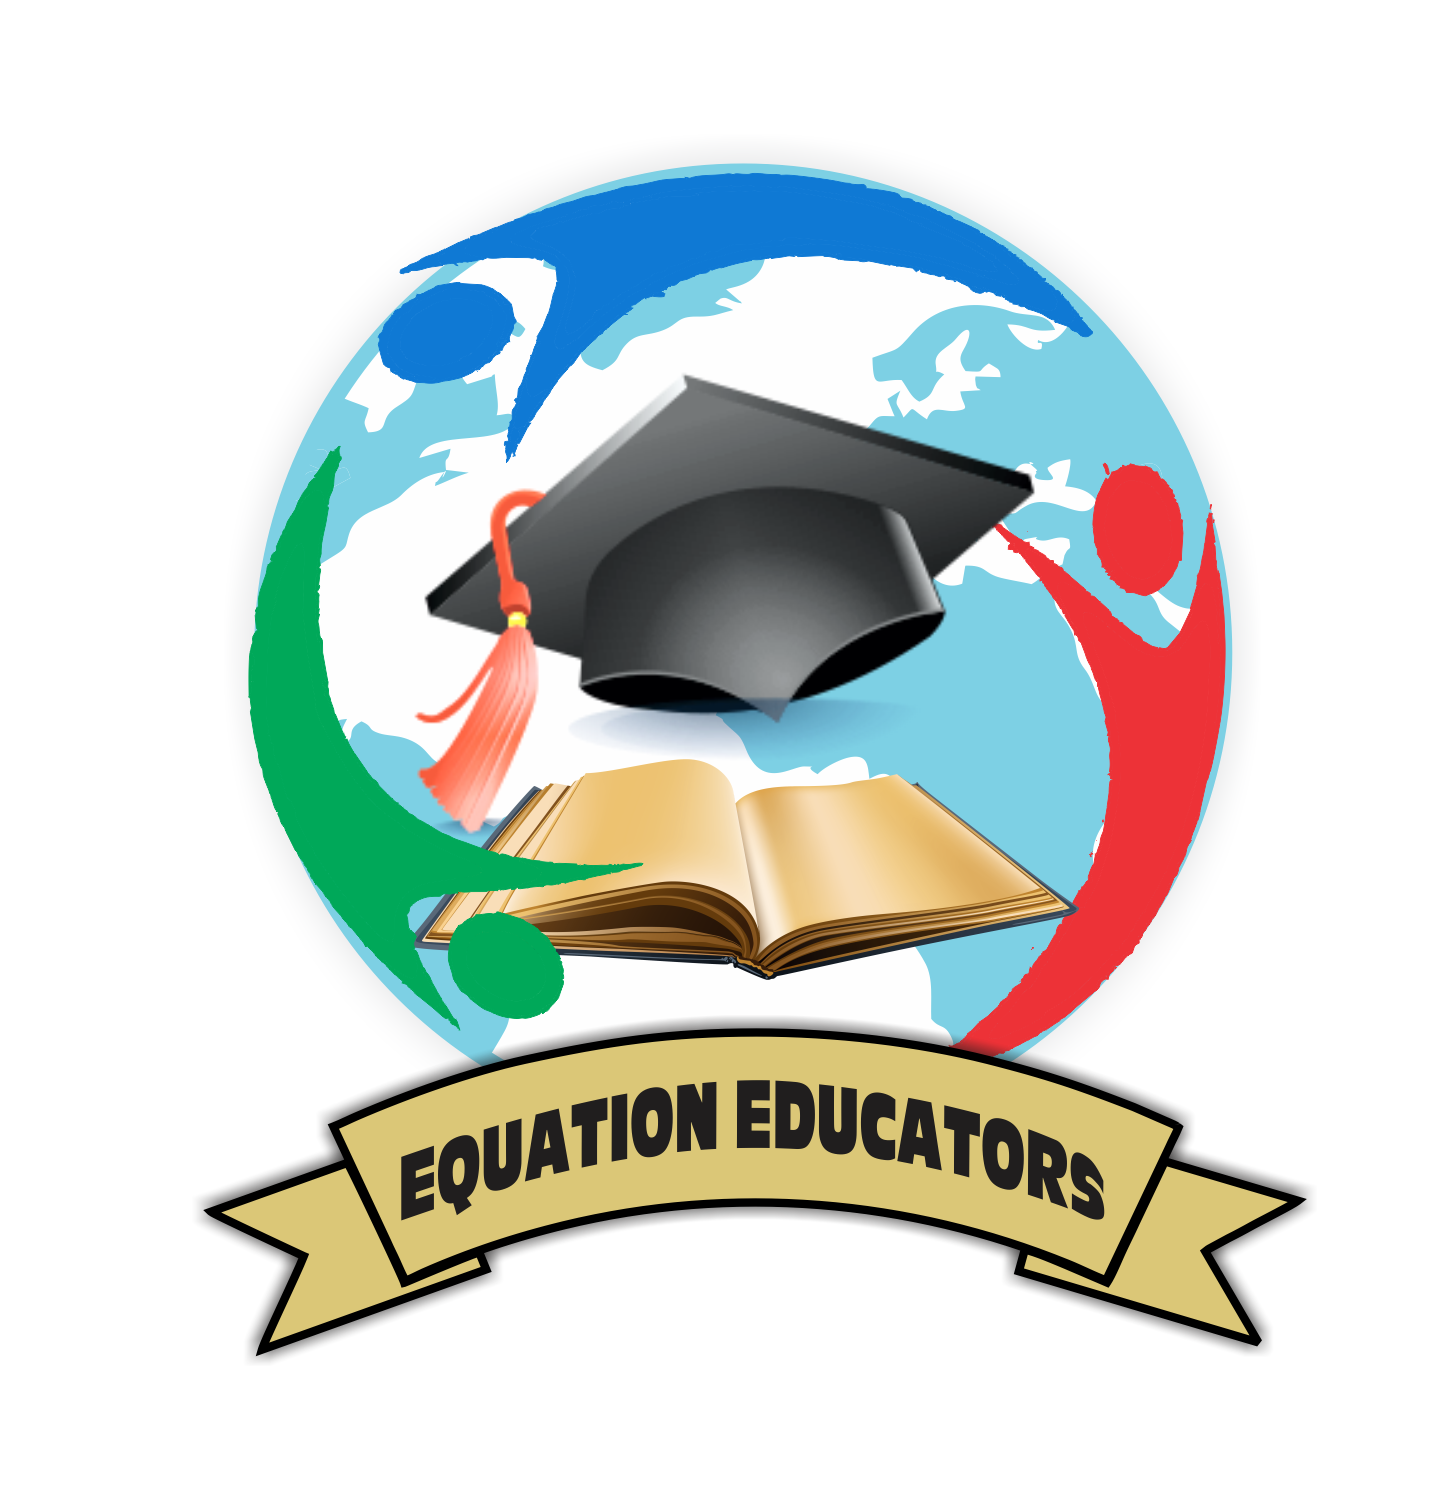 Equation Educators Ltd Official Website